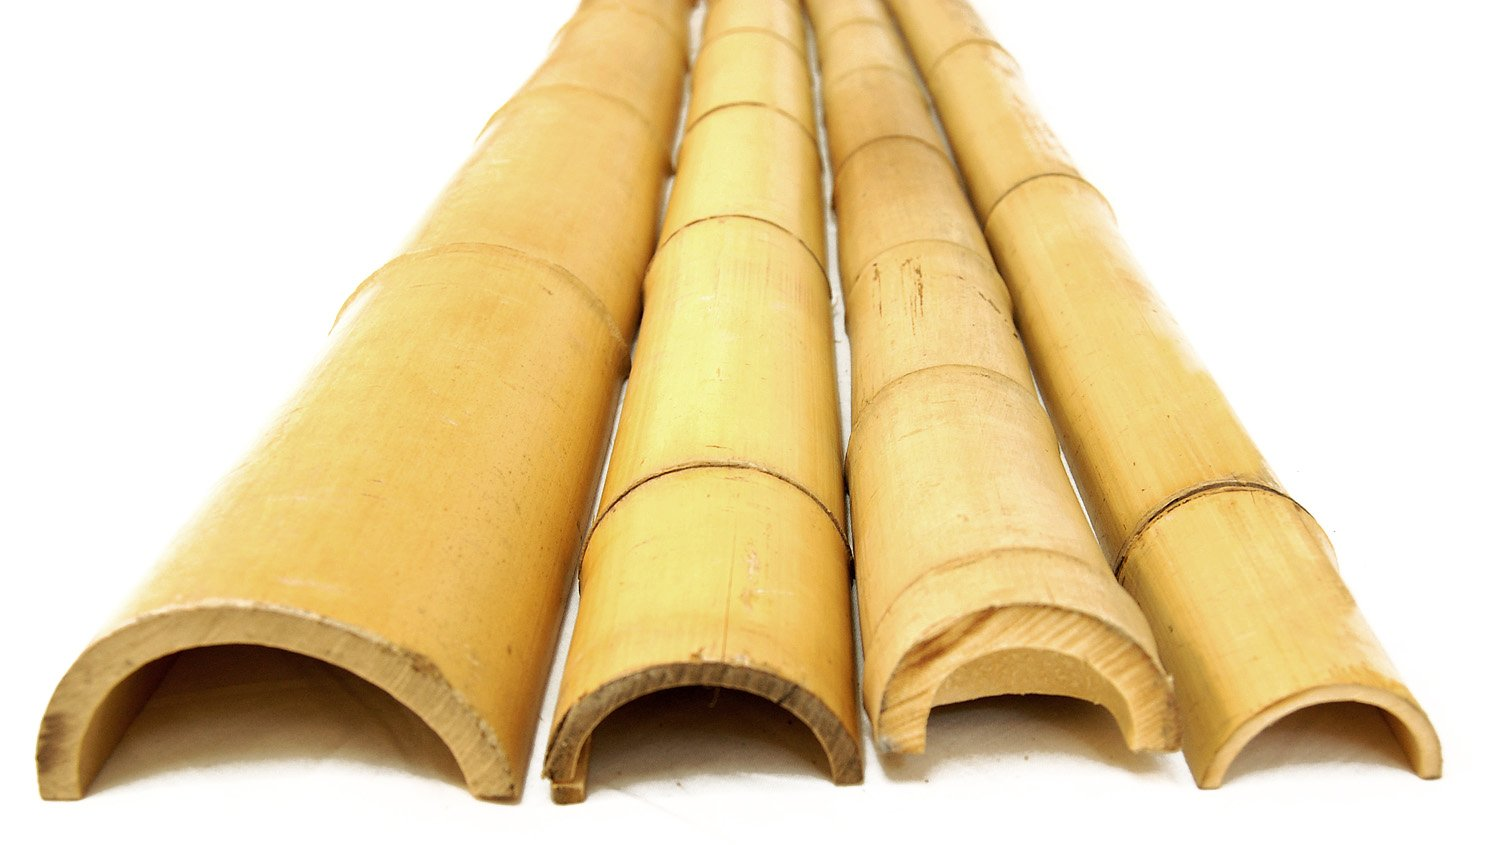 4'' x 5' Bamboo Poles Half Rounds (8 Half Poles) by FOREVER BAMBOO